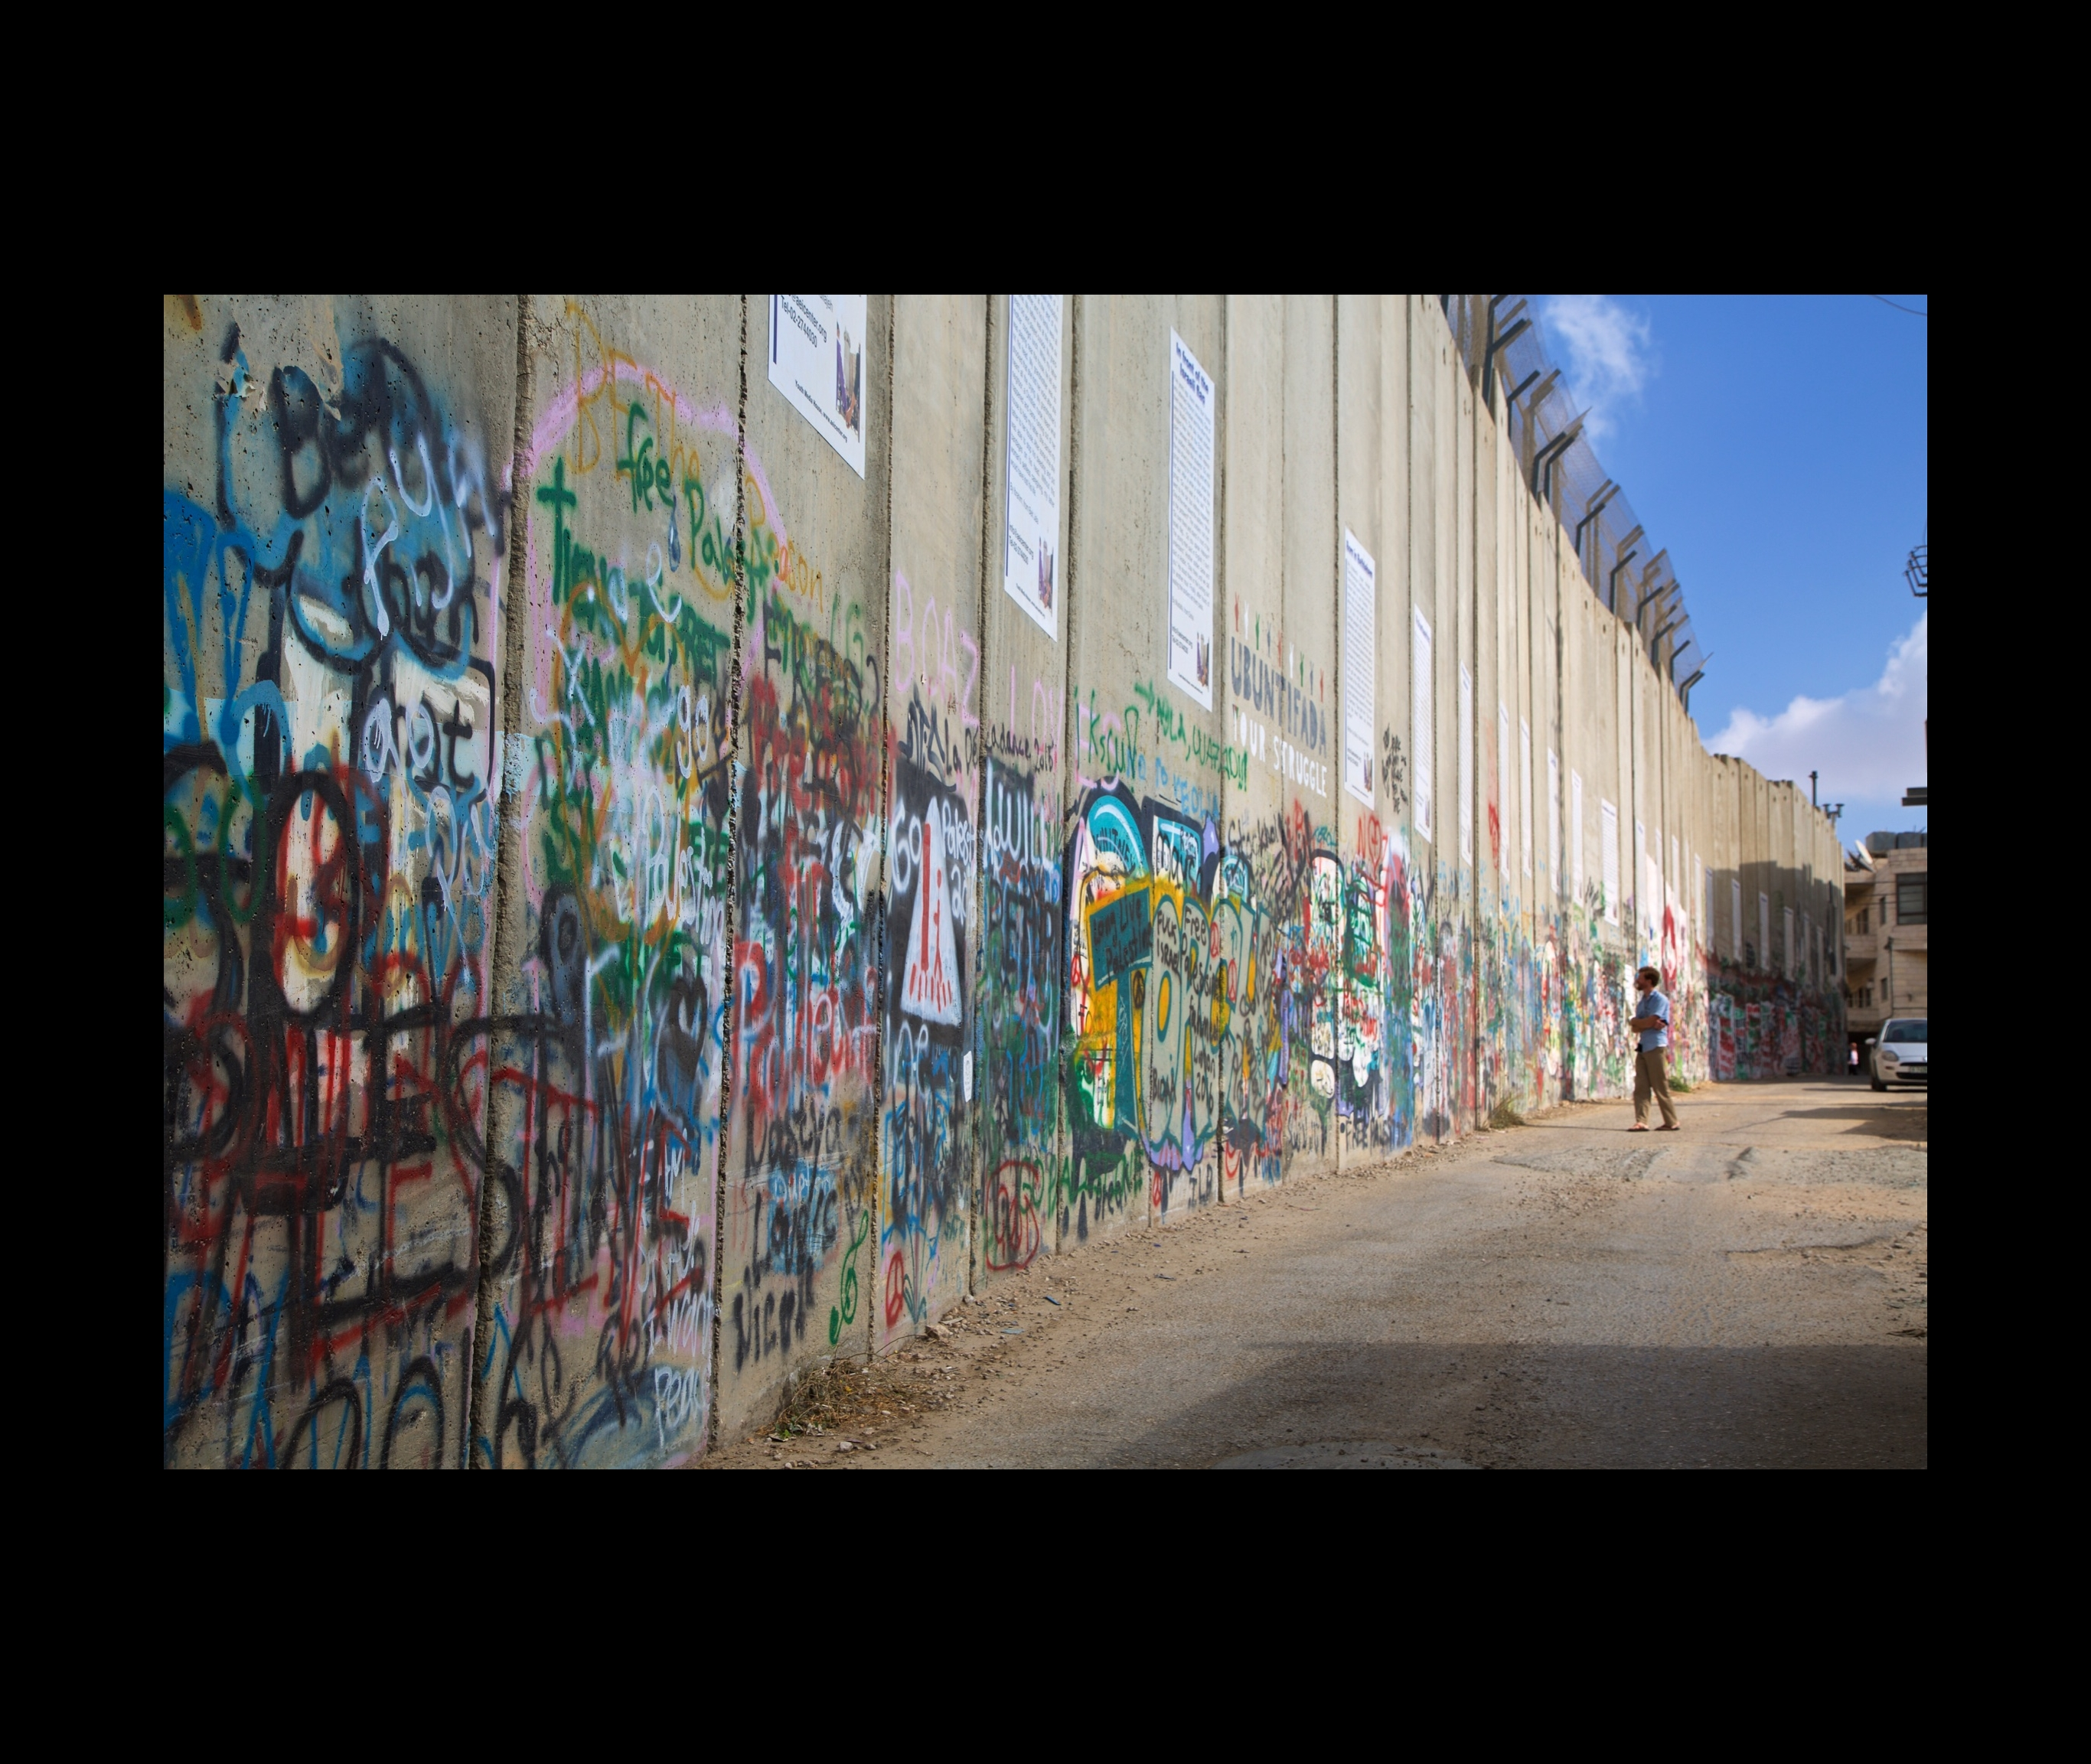 Wall, Bethlehem - Placed to cut off Palestinian access to Jerusalem and Rachel's tomb 56419